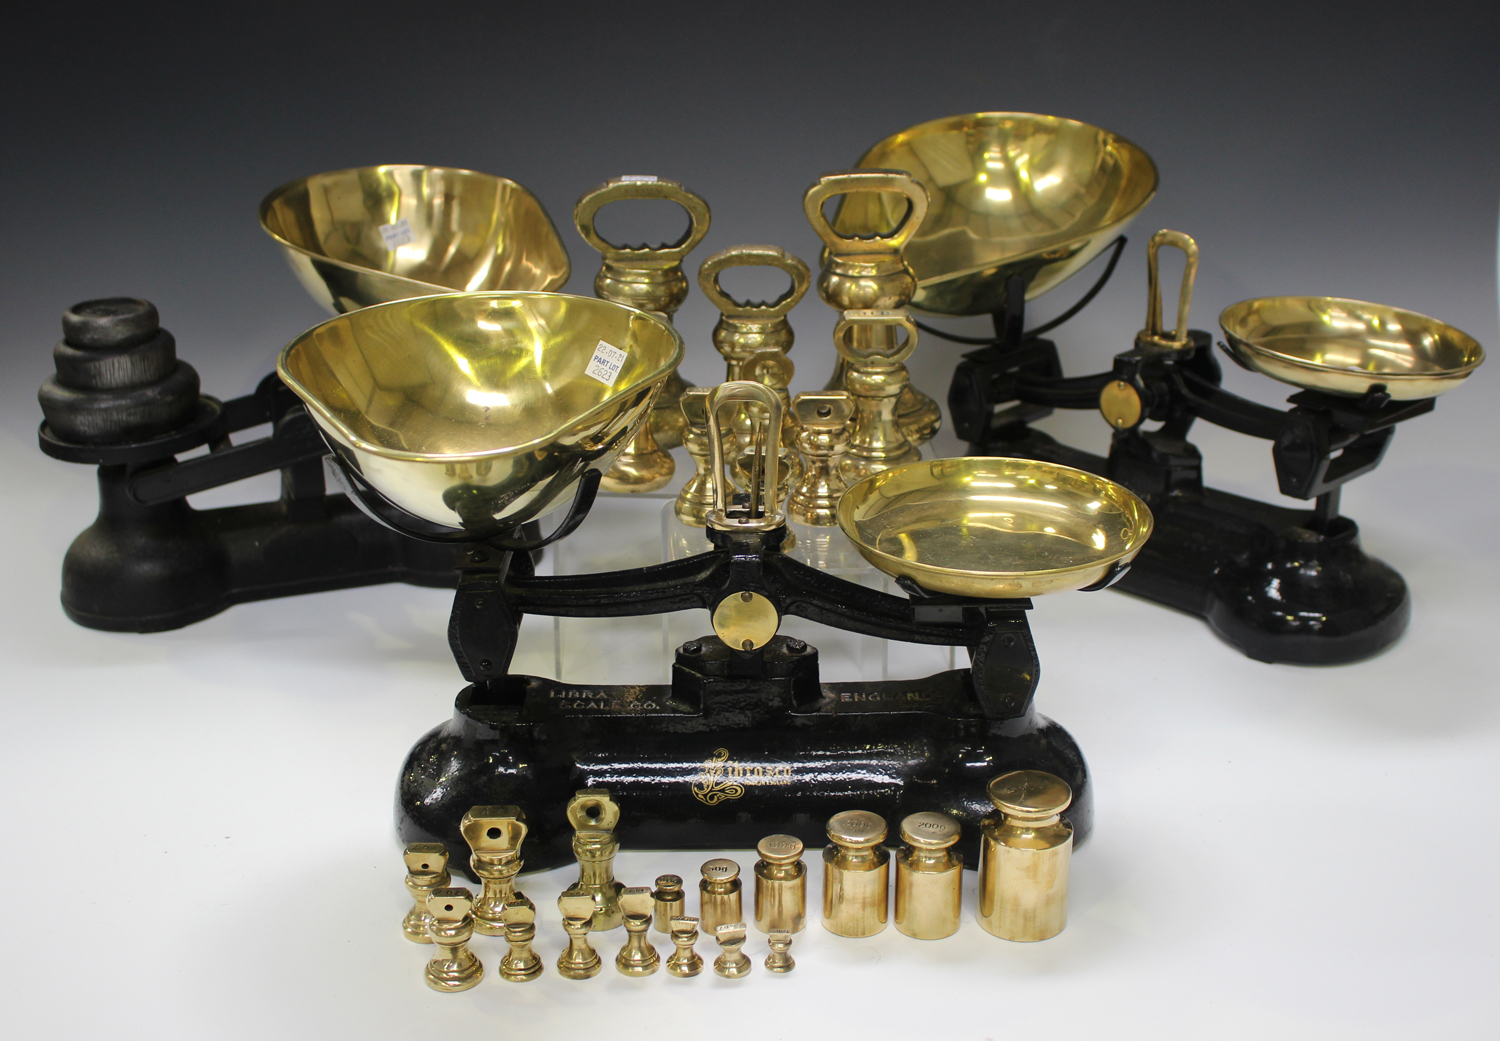 A group of three early 20th century cast iron balance scales with brass pans, together with a